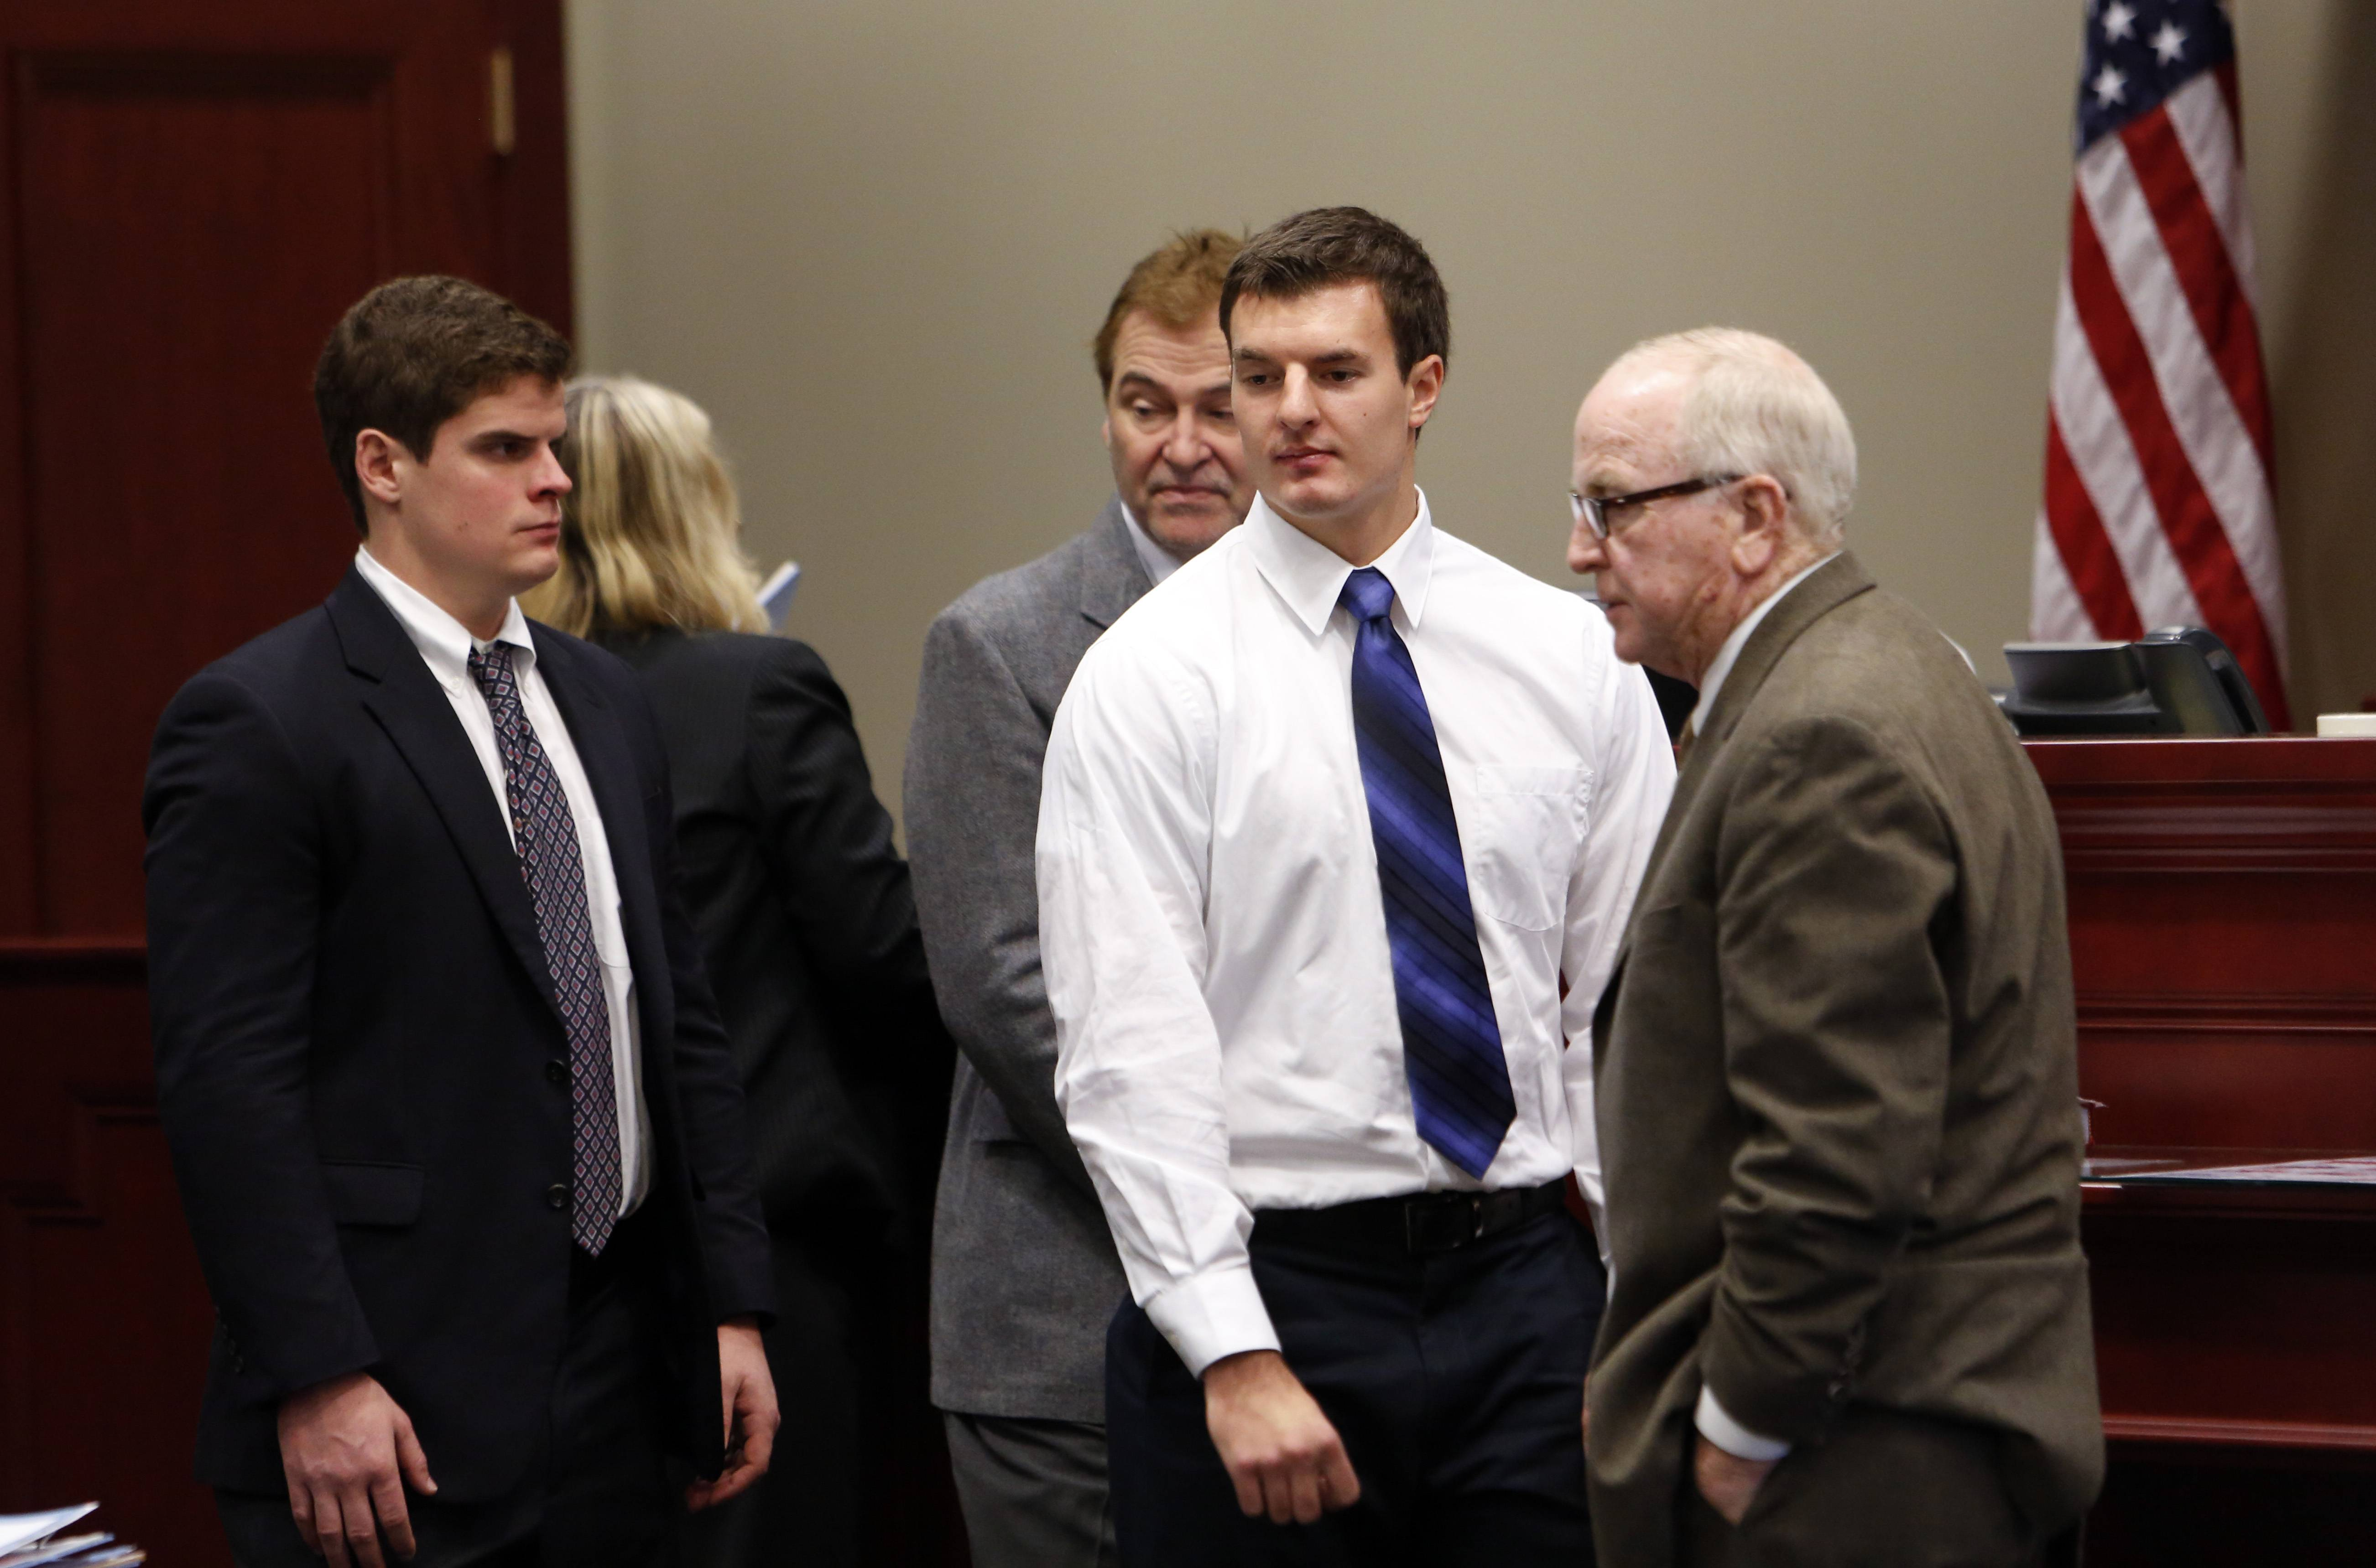 Hazing co-defendant James Harvey, from left, with attorney Brick Van Der Snick, and co-defendant Alexander Jandick, with attorney Jack Donahue, appear at the DeKalb County Courthouse in Sycamore for an October 2013 hearing.